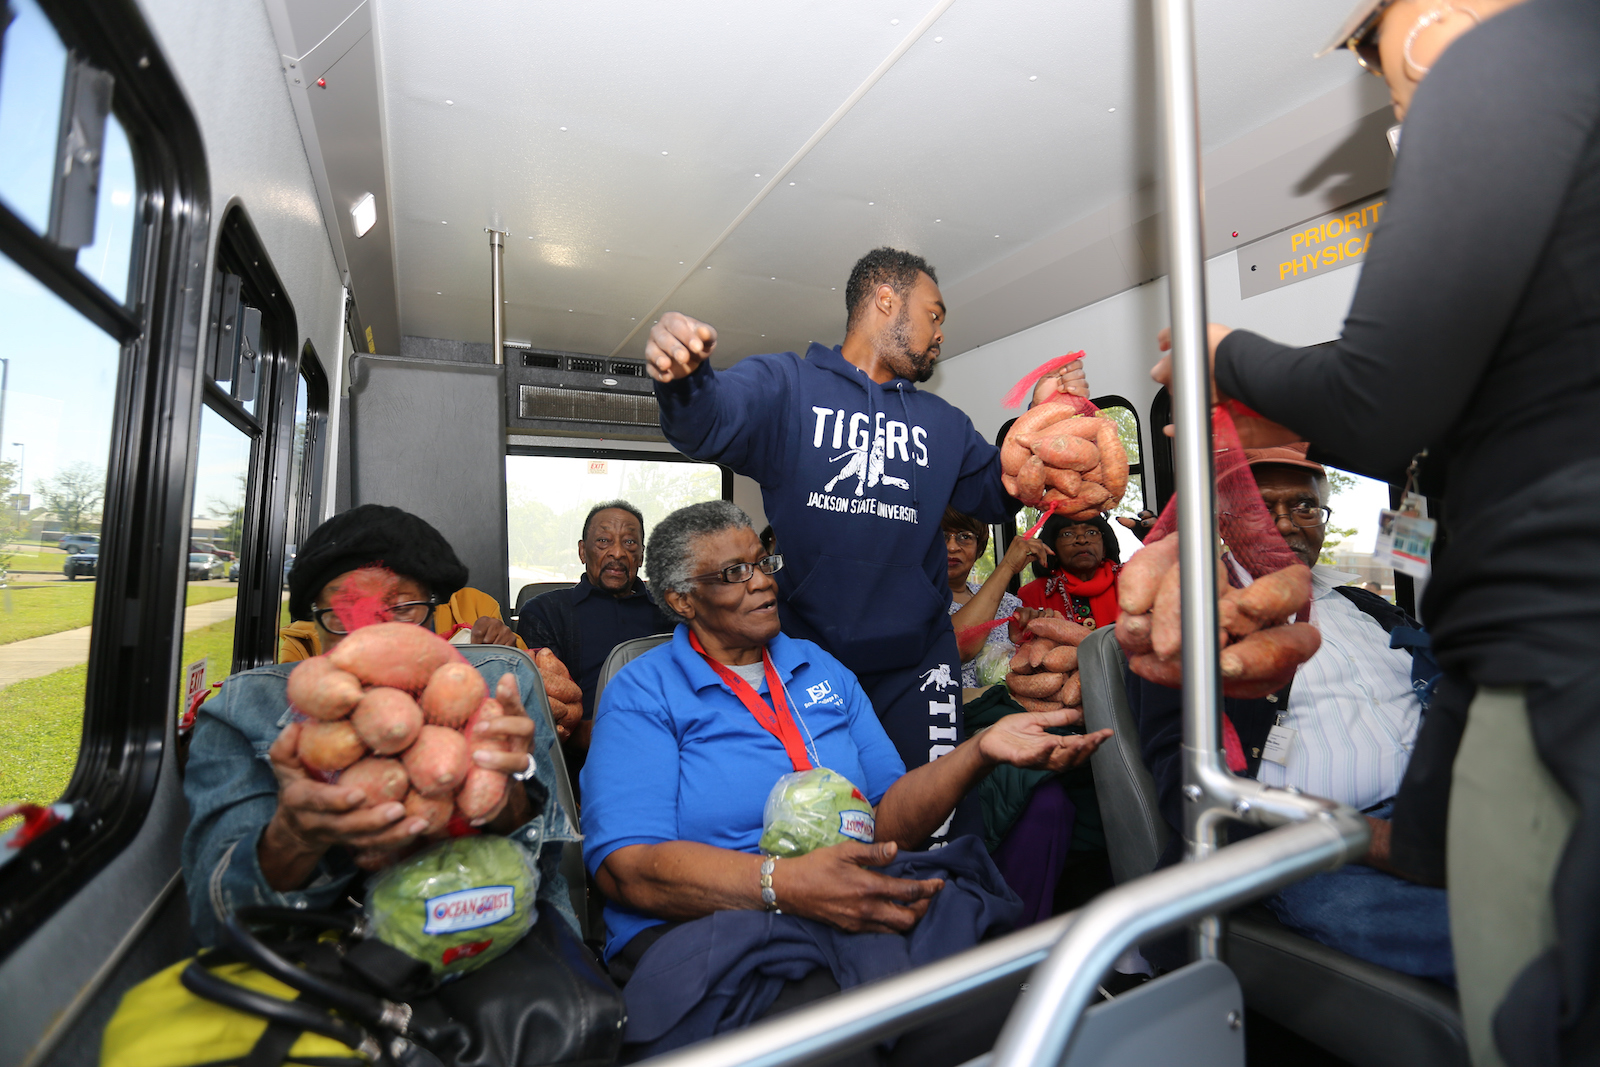 JSU distributes sweet potatoes and lettuce to senior citizens in a public transit vehicle. (Photo by Charles A. Smith/JSU)